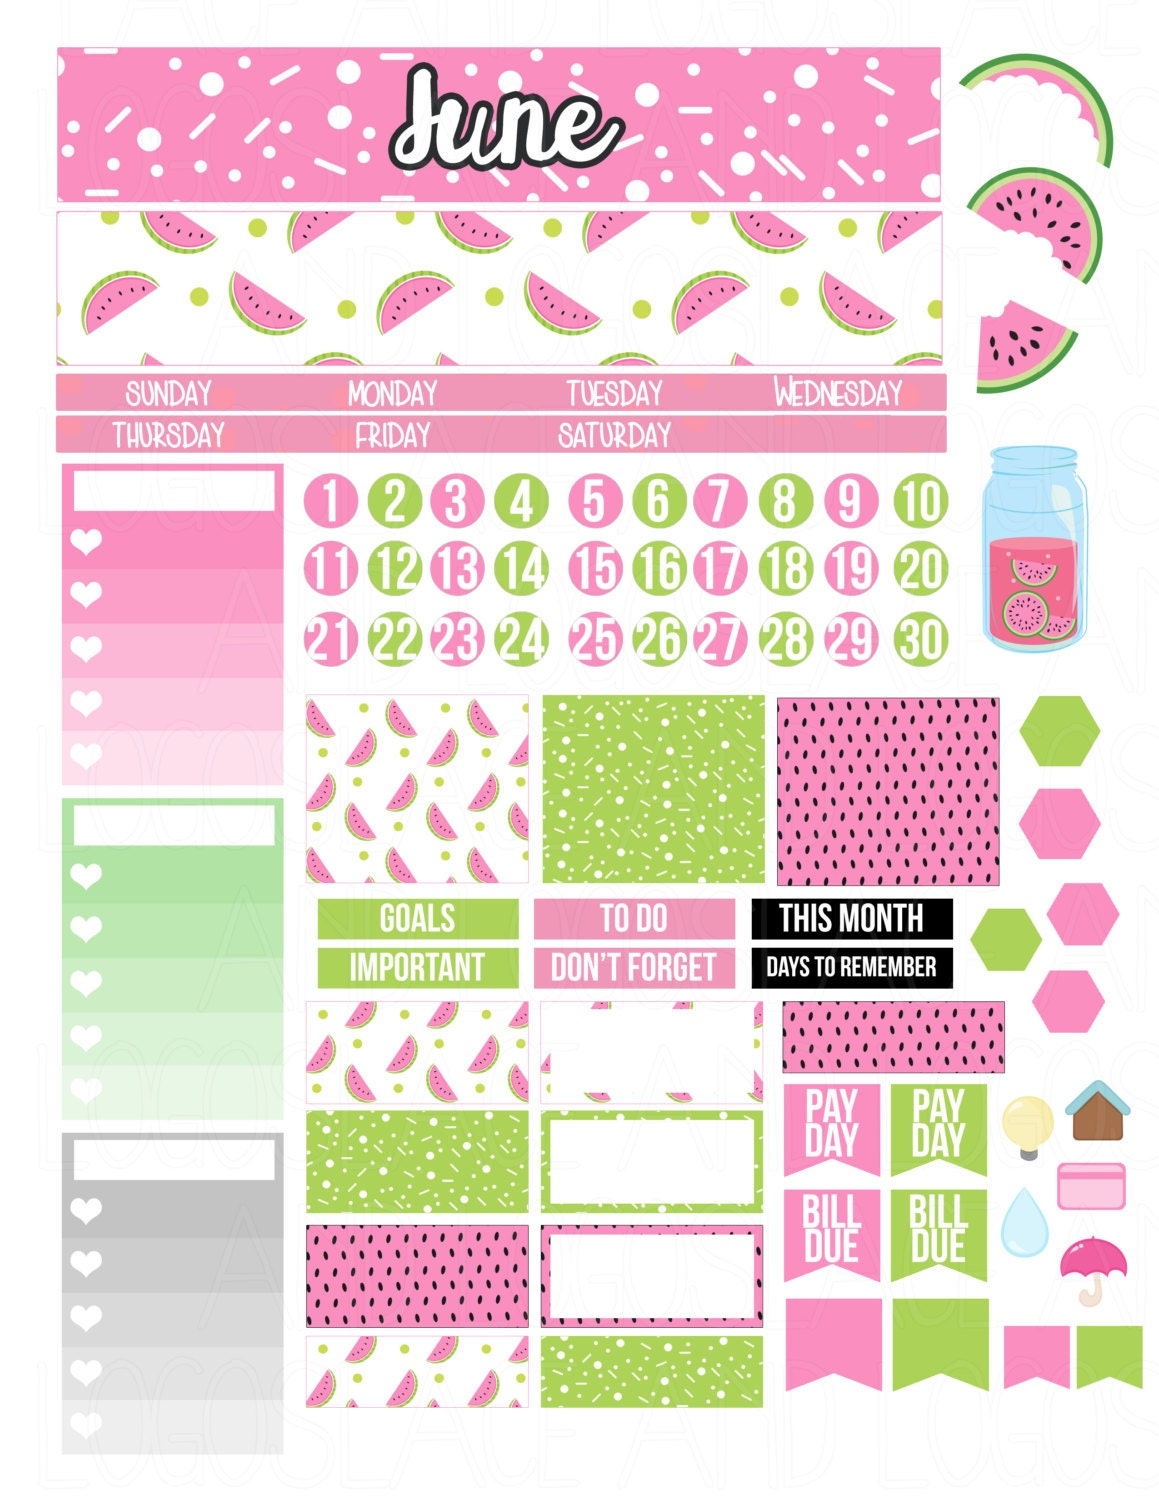 This is an image of Stupendous Planner Printable Stickers